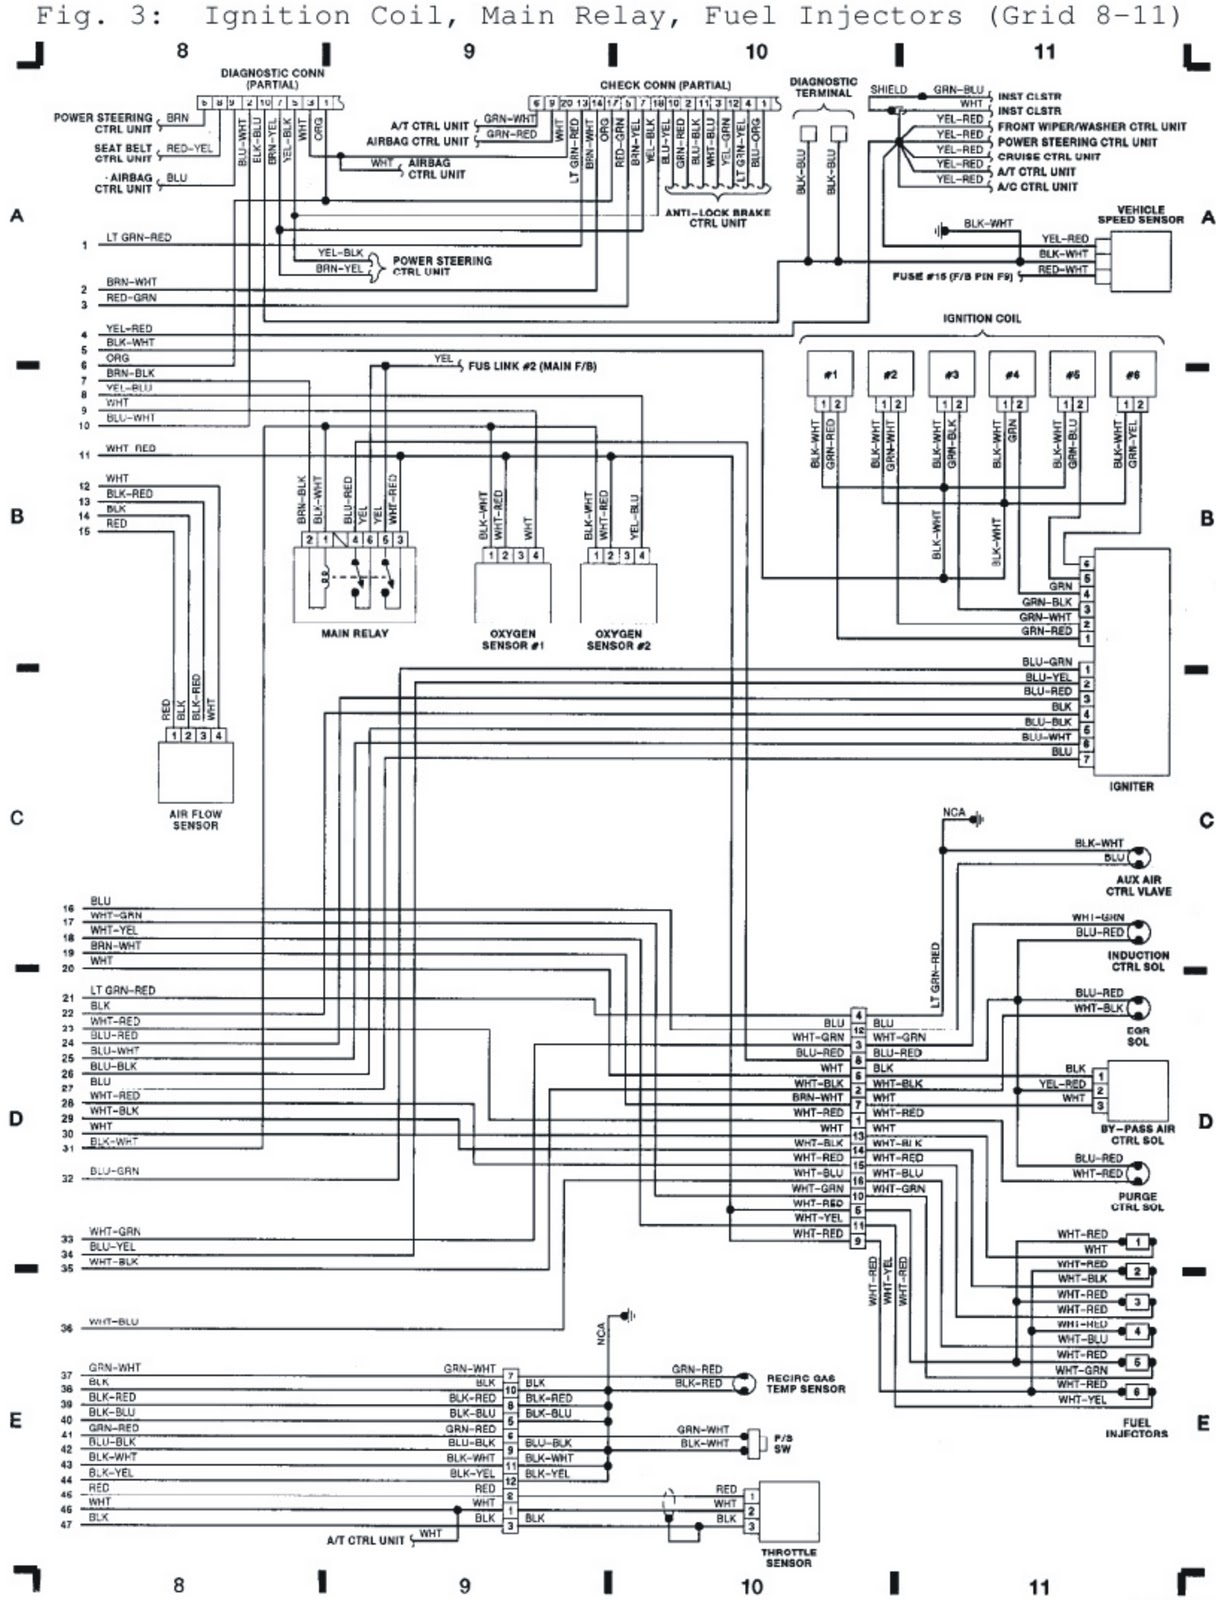 January 2012 Schematic Wiring Diagrams Solutions Ford Ikon Diagram Pdf 1992 Subaru Ignition Coil Main Relay Fuel Injectors System